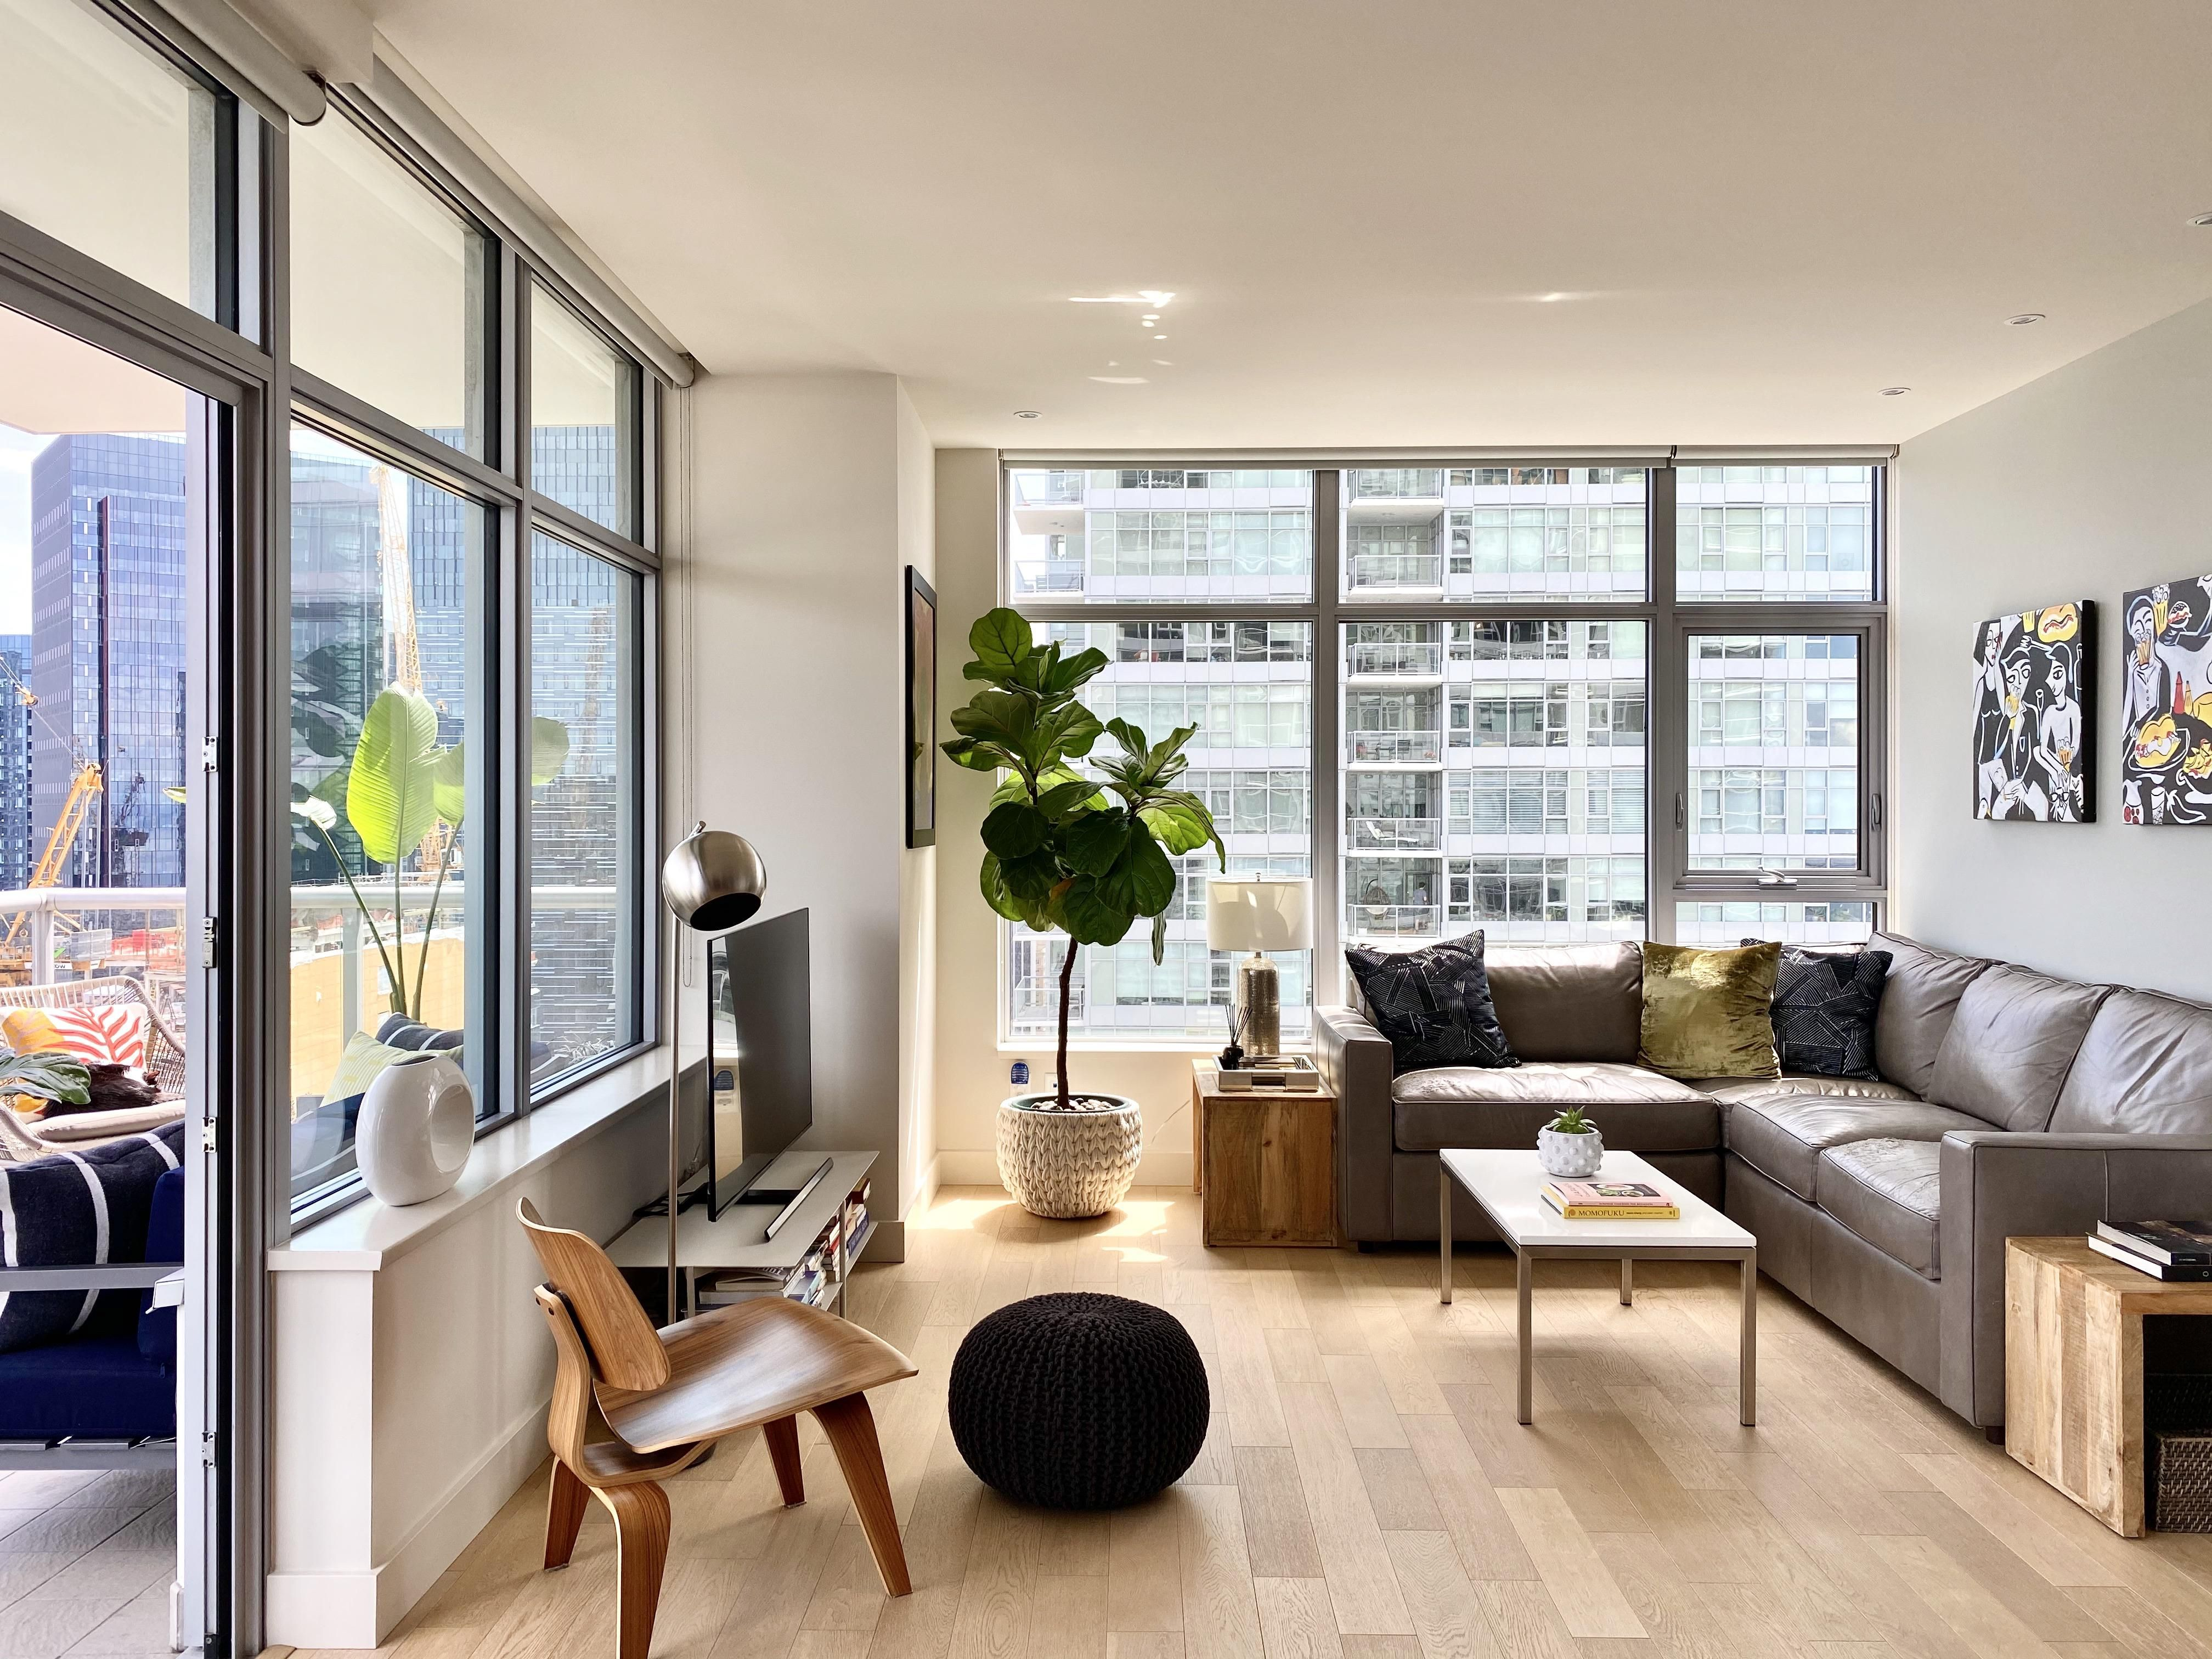 Breaking All The Rules No Rug Tv Against A Window A Fabric Destructive Cat Who Window Treatments Living Room Modern Minimalist Living Room Living Room Windows Living room no rug